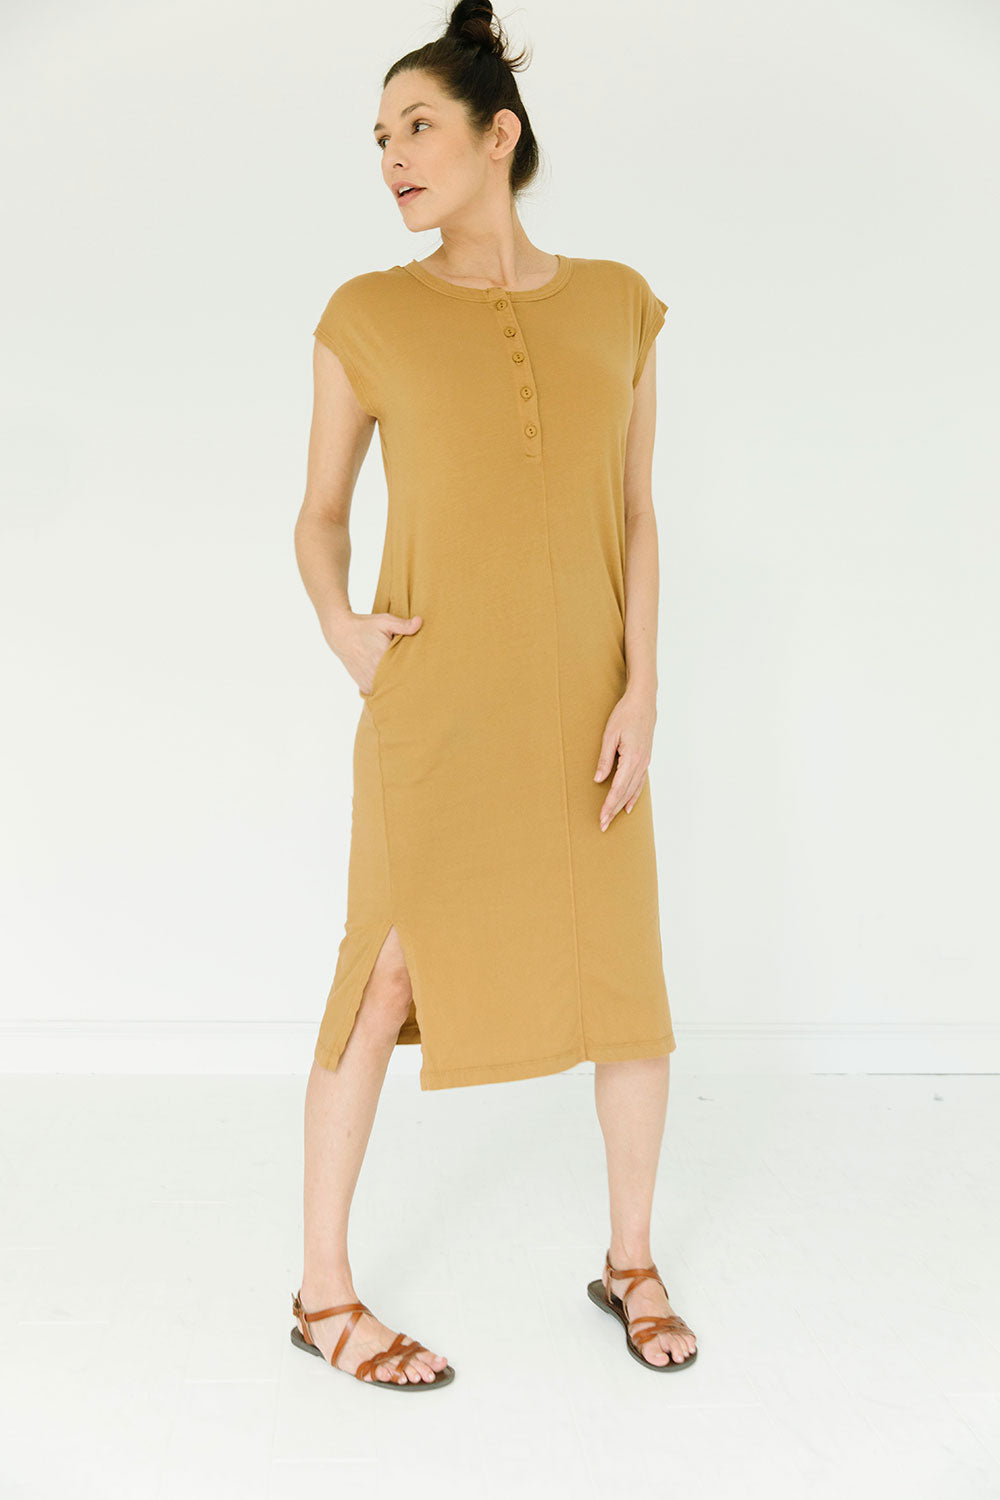 The Organic Market Dress in Bone Brown (2XL)